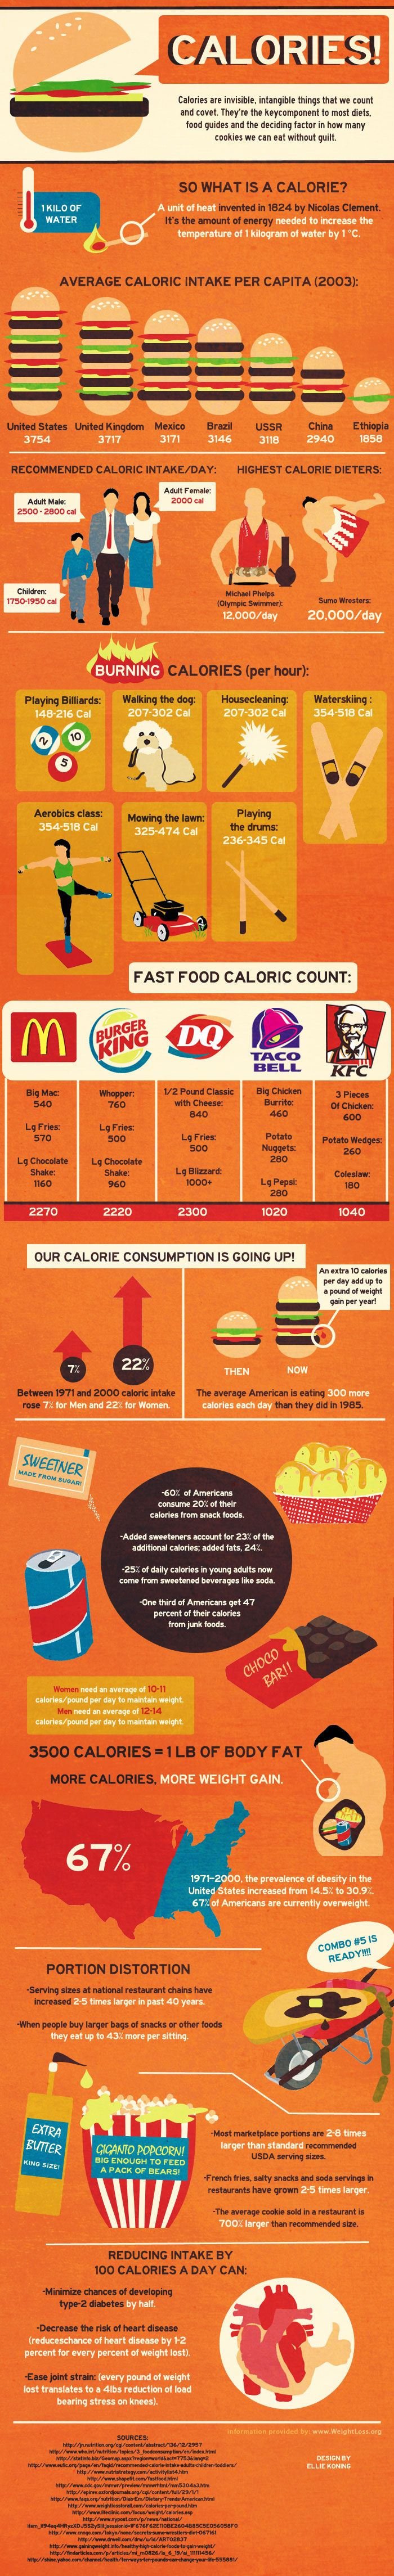 The Cost of #Calories #Infographic http://linkreaction.com.au/index.php/health-coaching